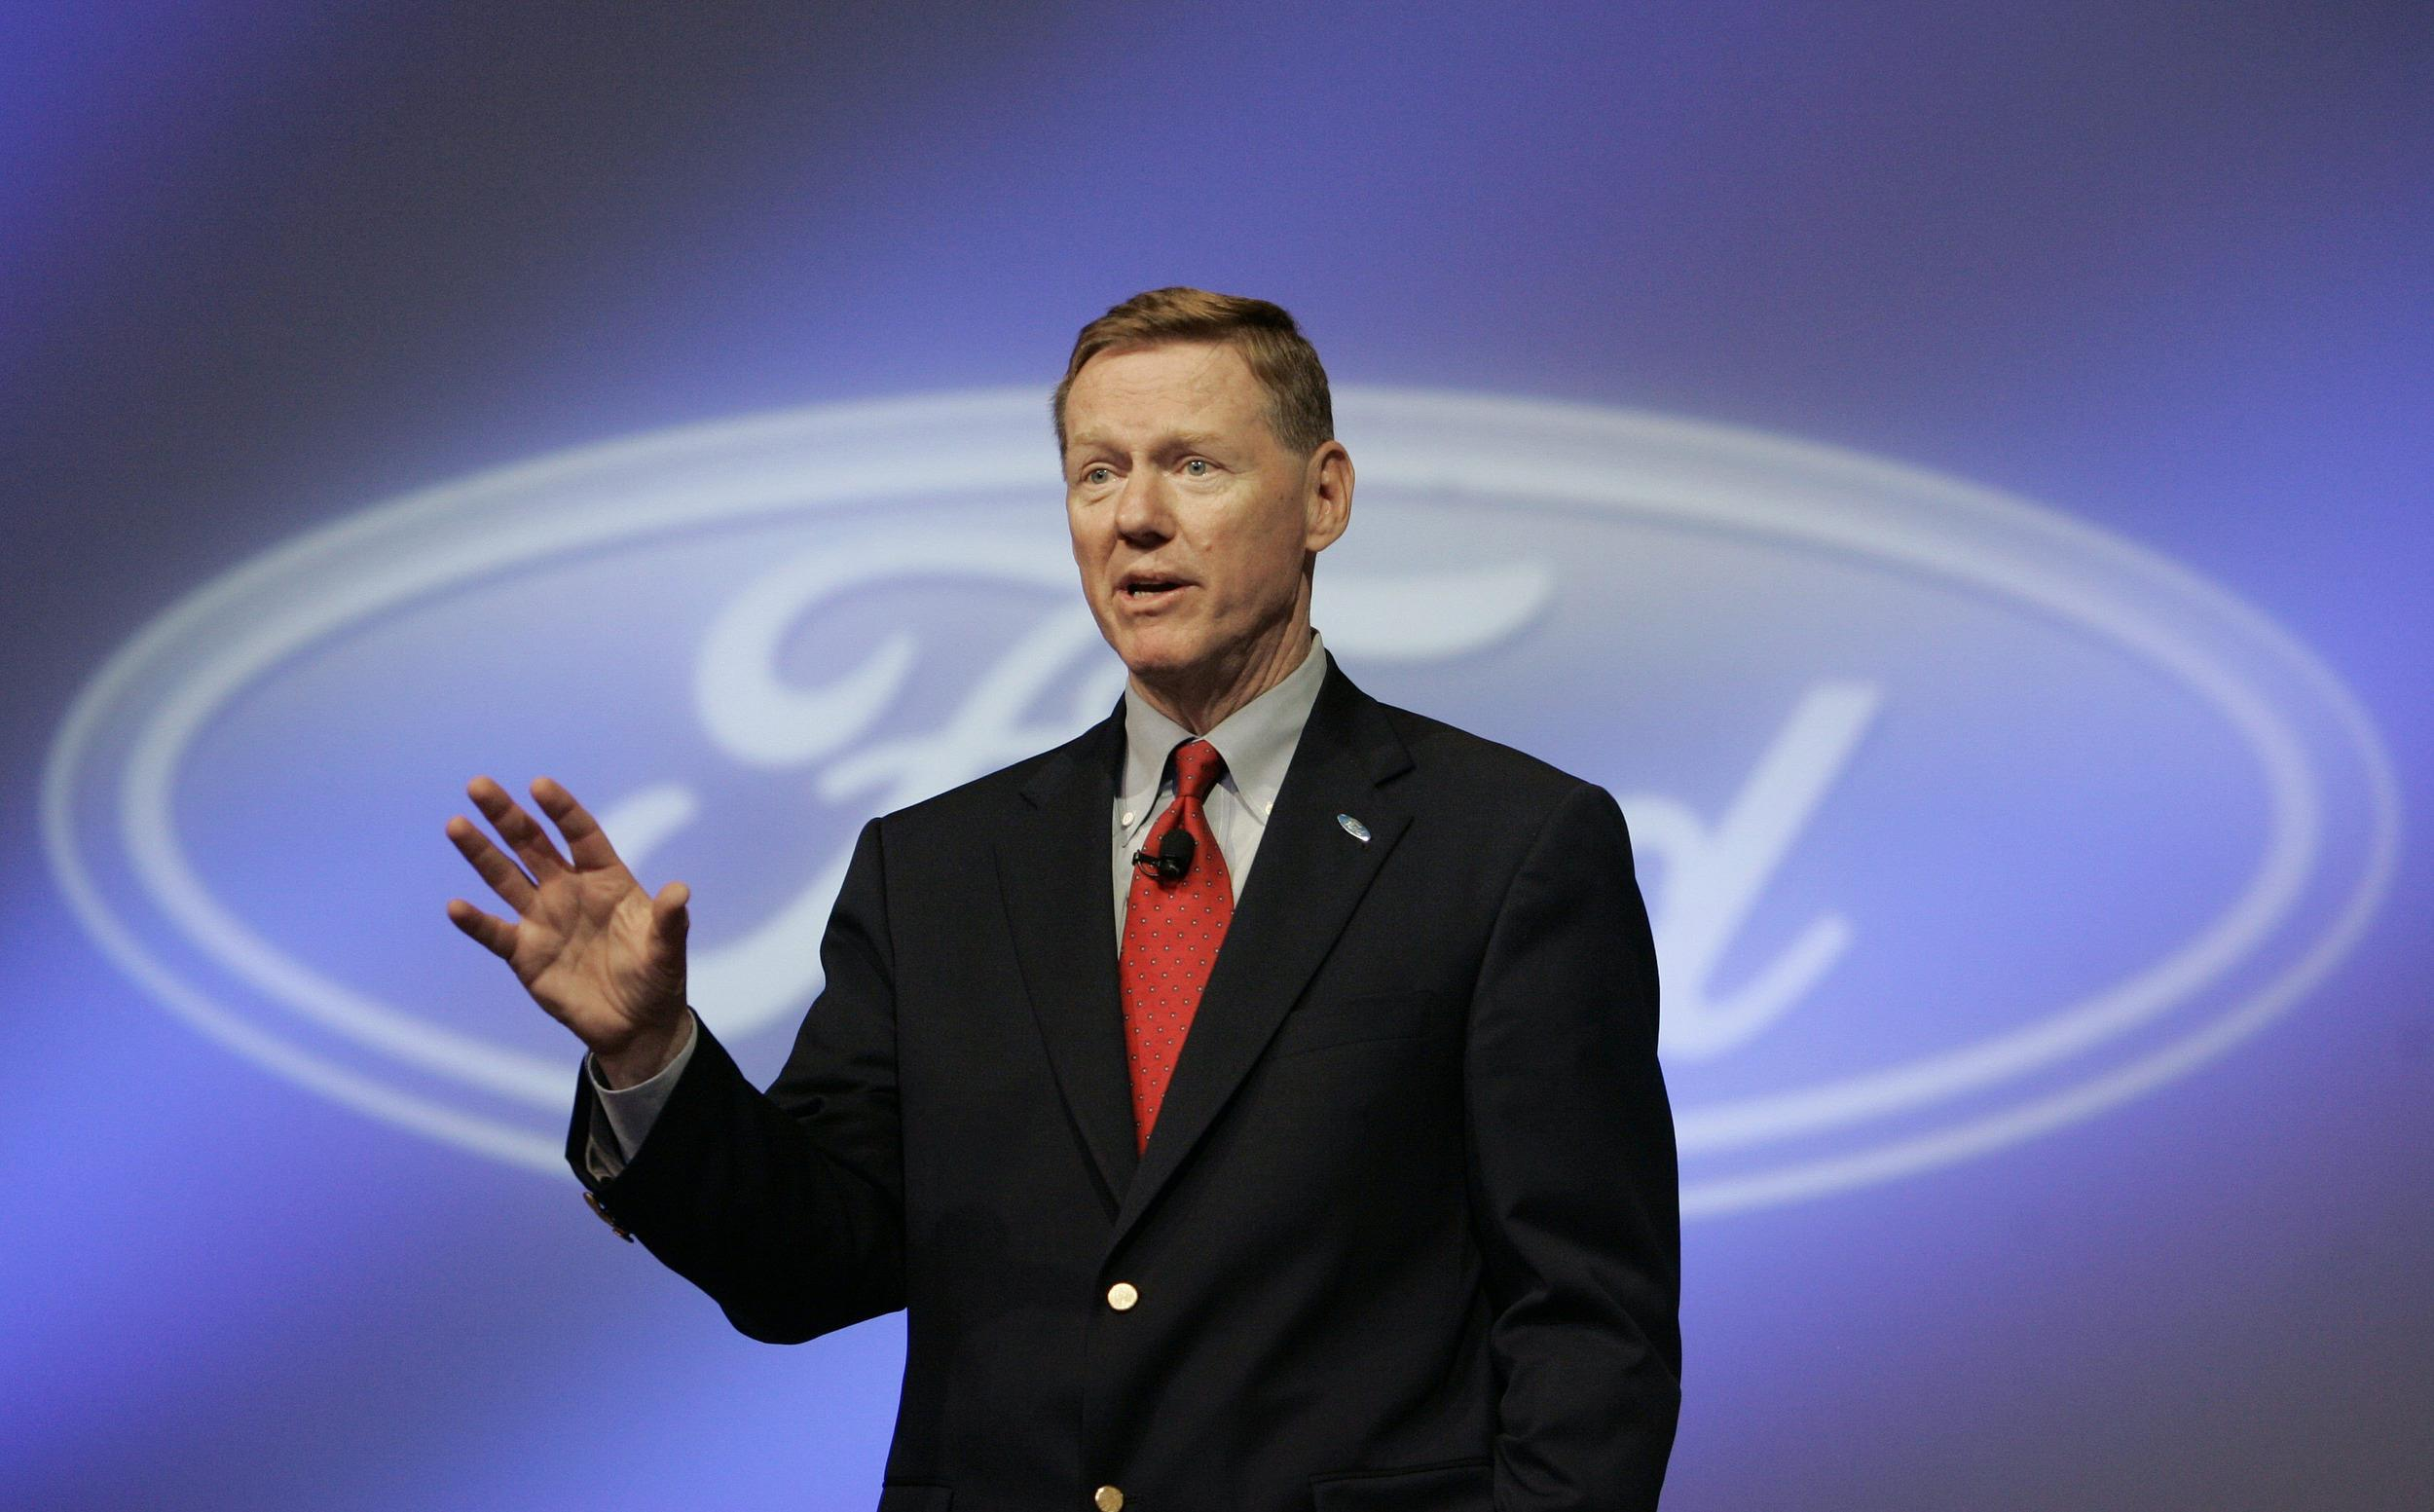 Adieu, adieu. Ford CEO Alan Mulally (pictured here) is stepping down and will be replaced by Ford veteran Mark Fields.